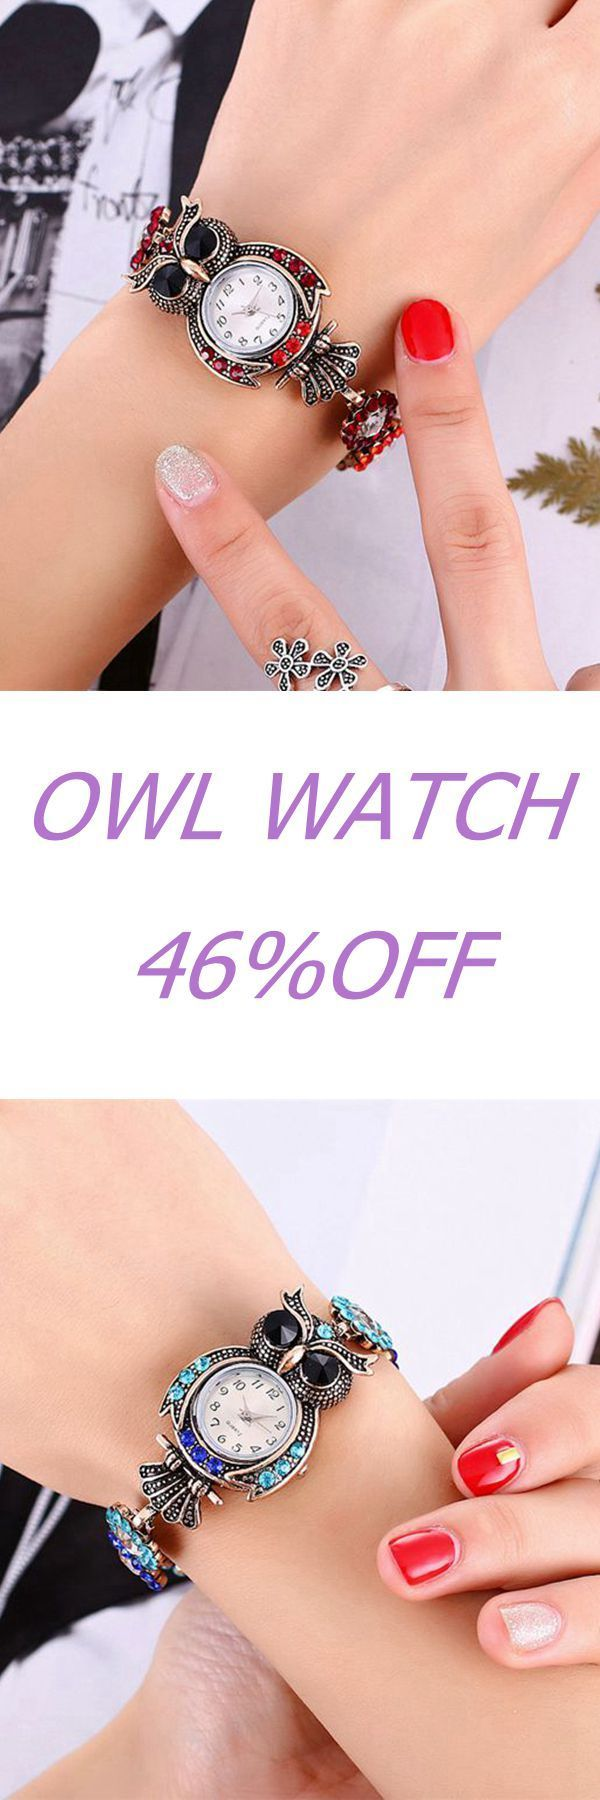 Vintage Watch Crystal Owl Bracelet Digital Watches Fashion Gift Watches for Women is hot-sale, waterproof watches, bracelet watch, and more other cheap women watches are provided on NewChic.